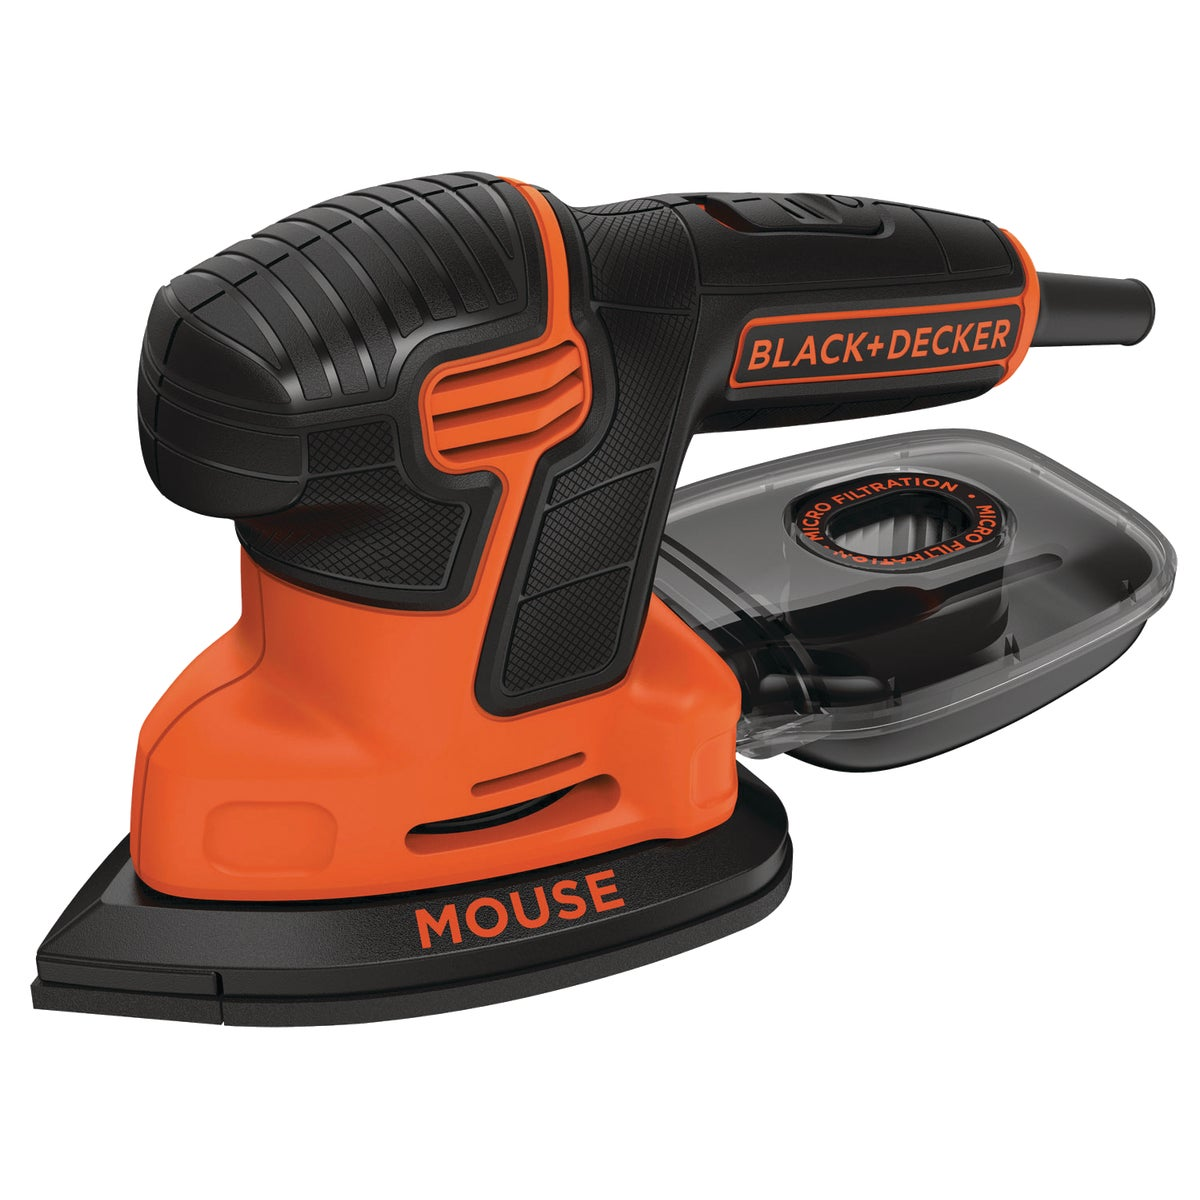 MOUSE POLISHER & SANDER - MS800B by Black & Decker